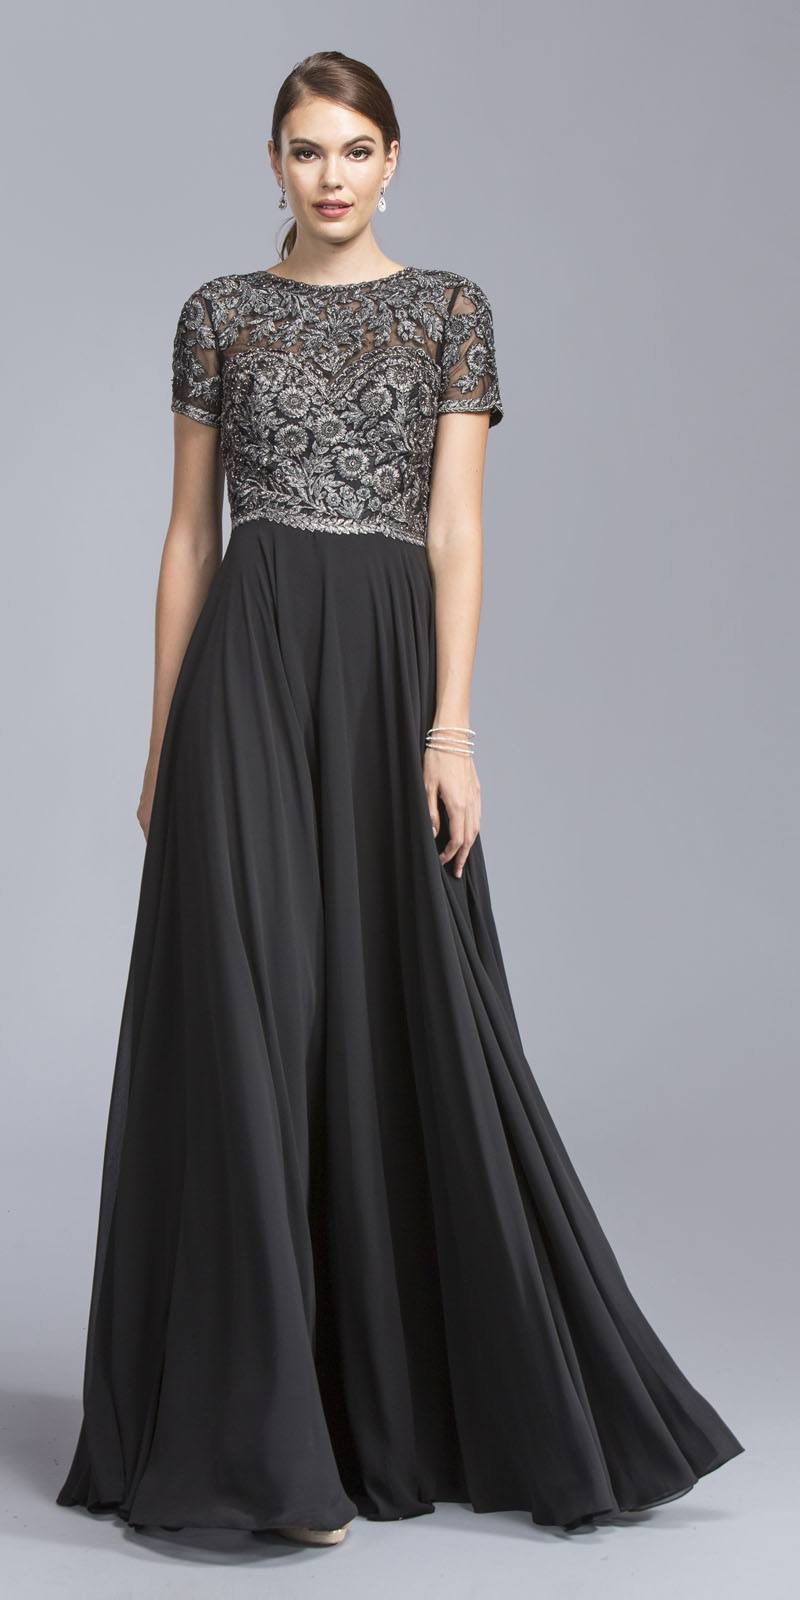 Aspeed Usa M2045 Black Short Sleeves Long Formal Dress Embroidered